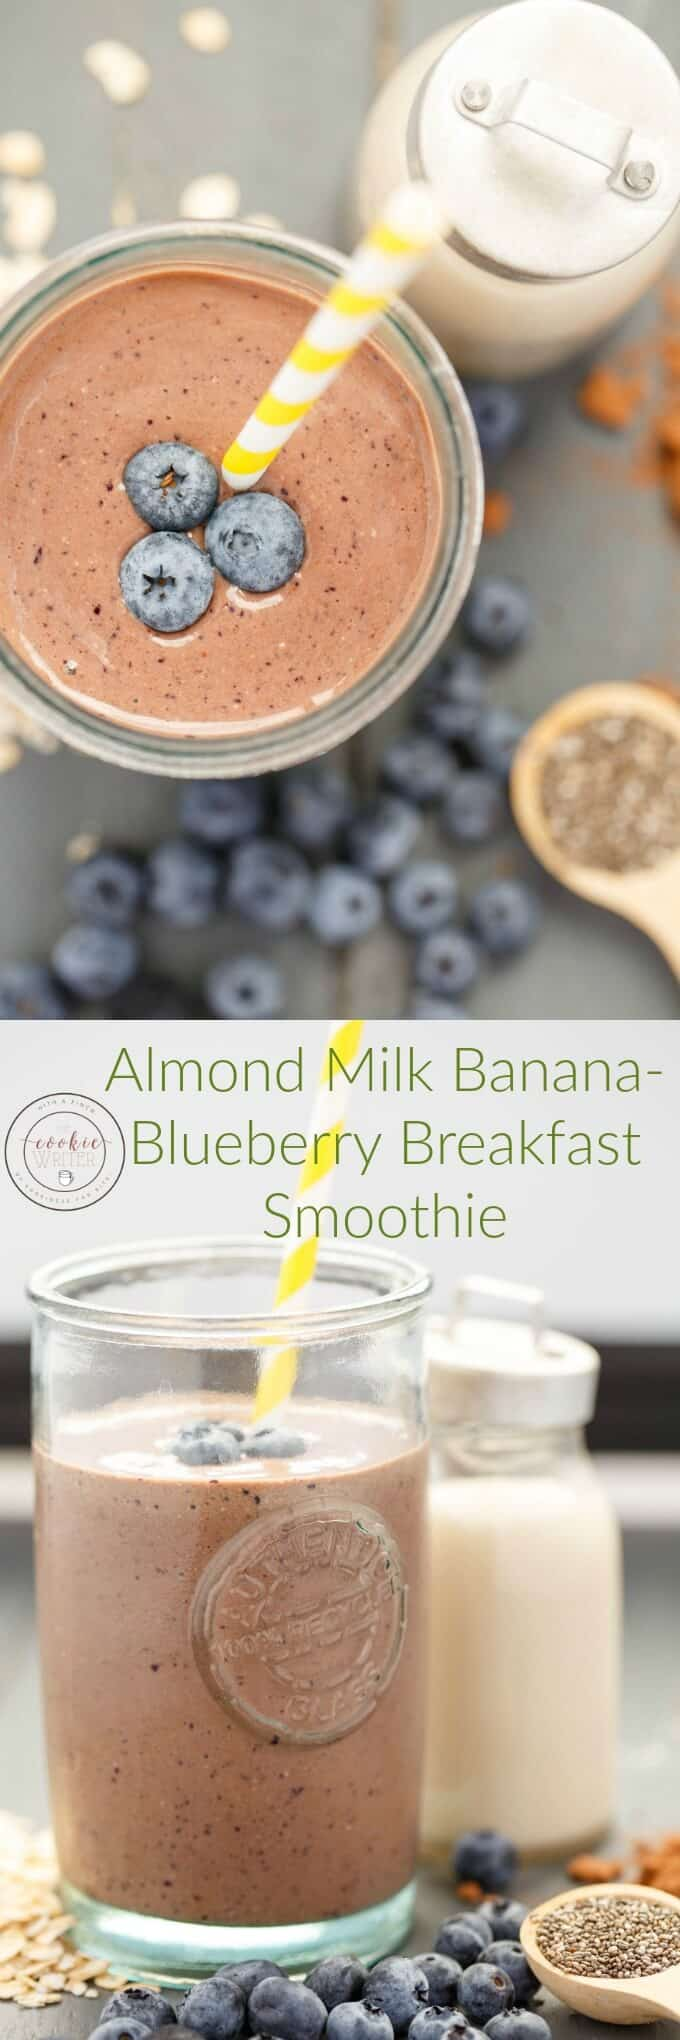 Almond Milk Banana-Blueberry Breakfast Smoothie